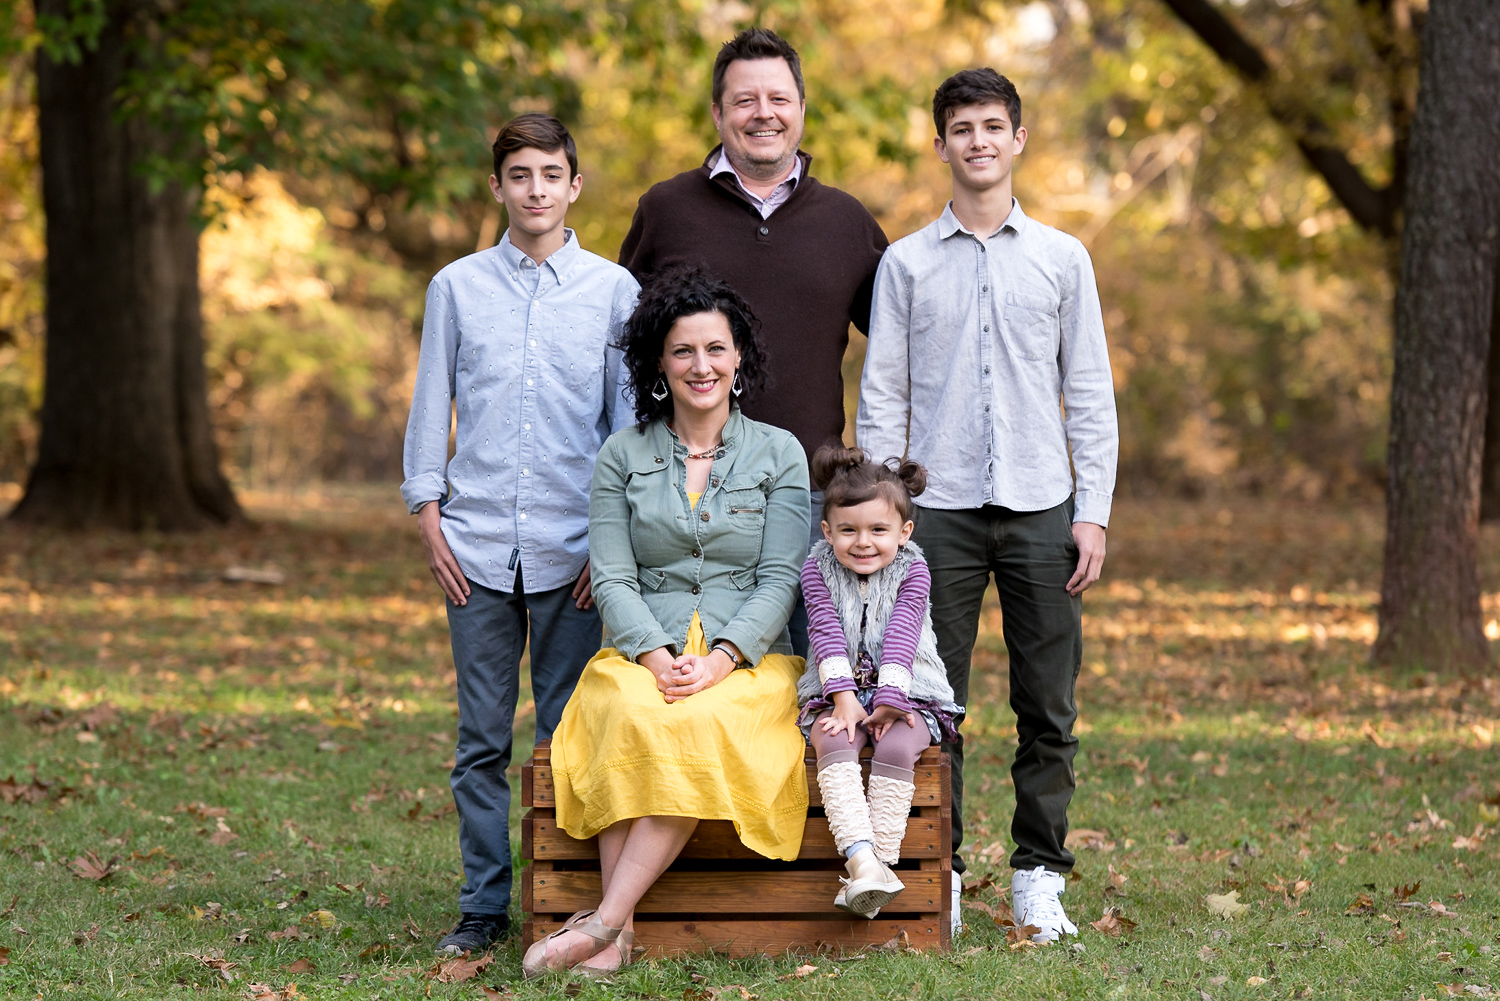 How to Build a Bench Prop for Great Portrait Photos